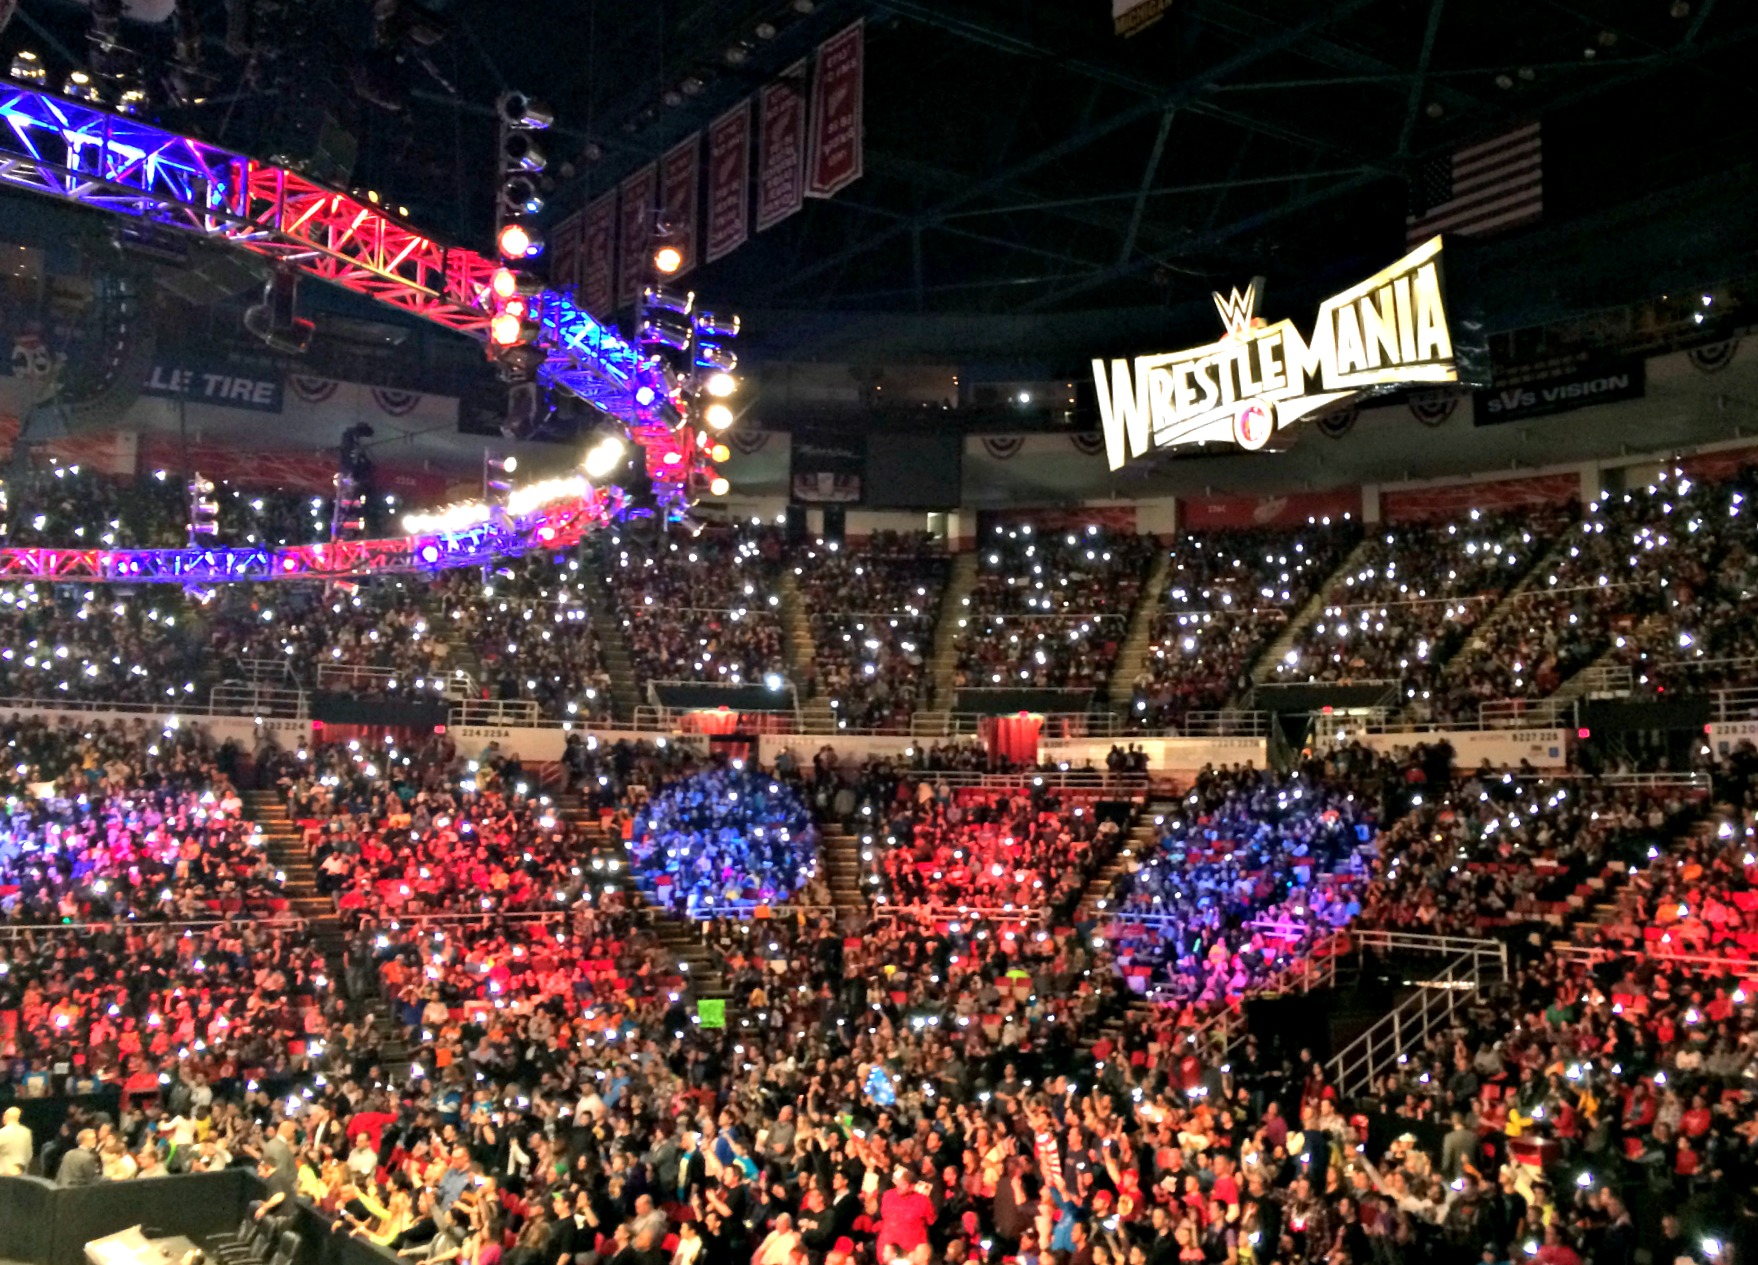 WrestleMania WWE Detroit